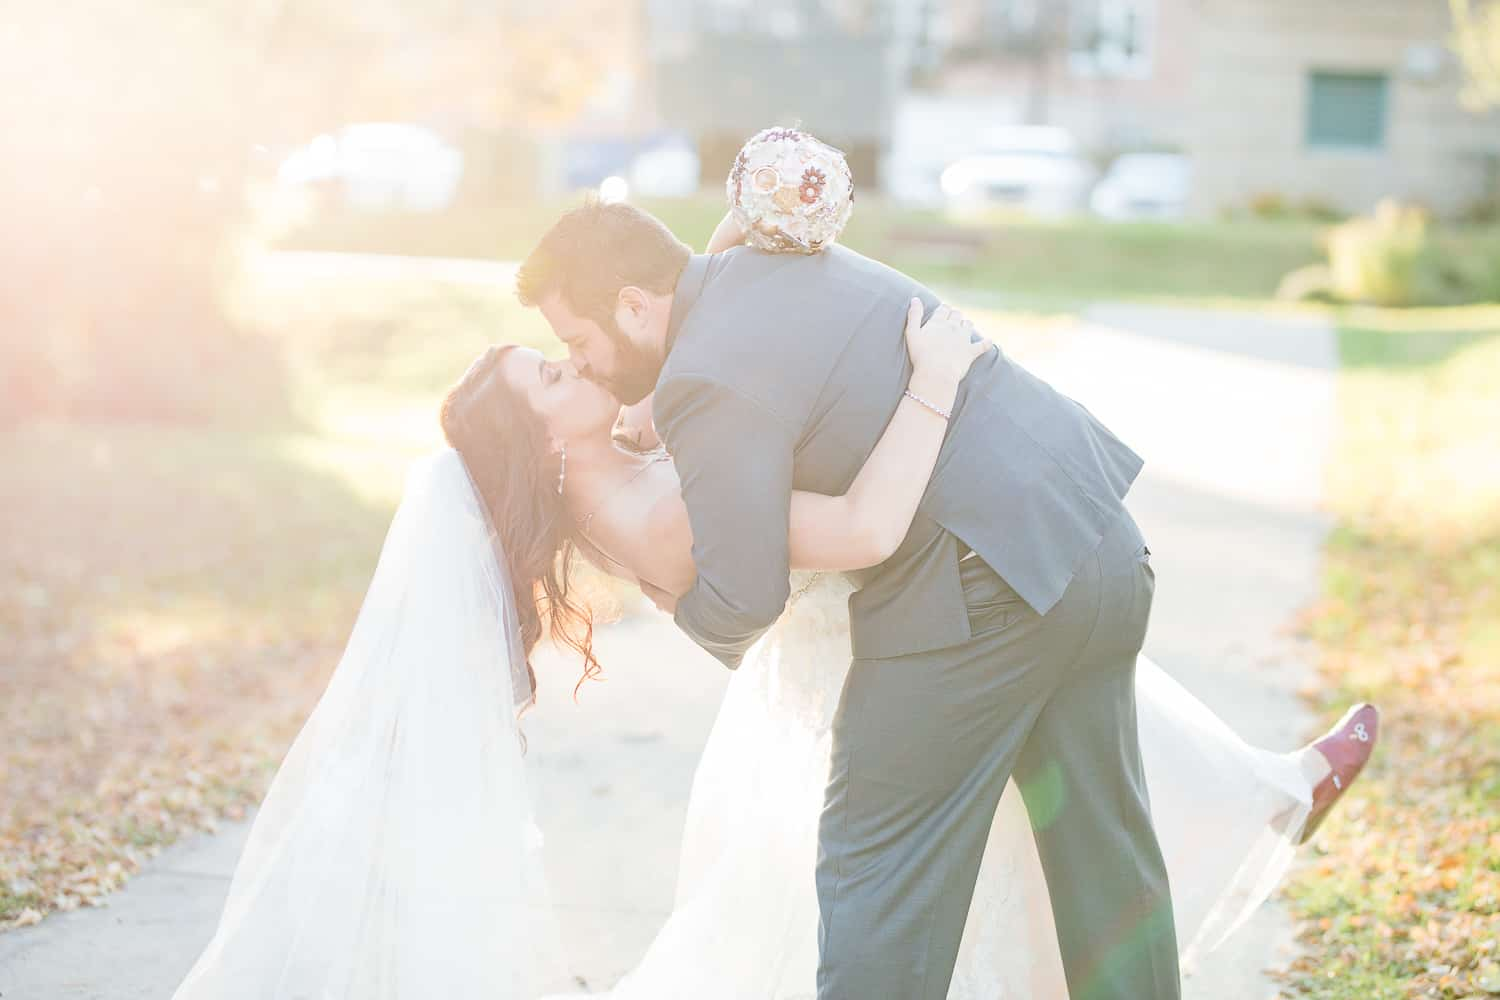 Excelsior Springs wedding photography